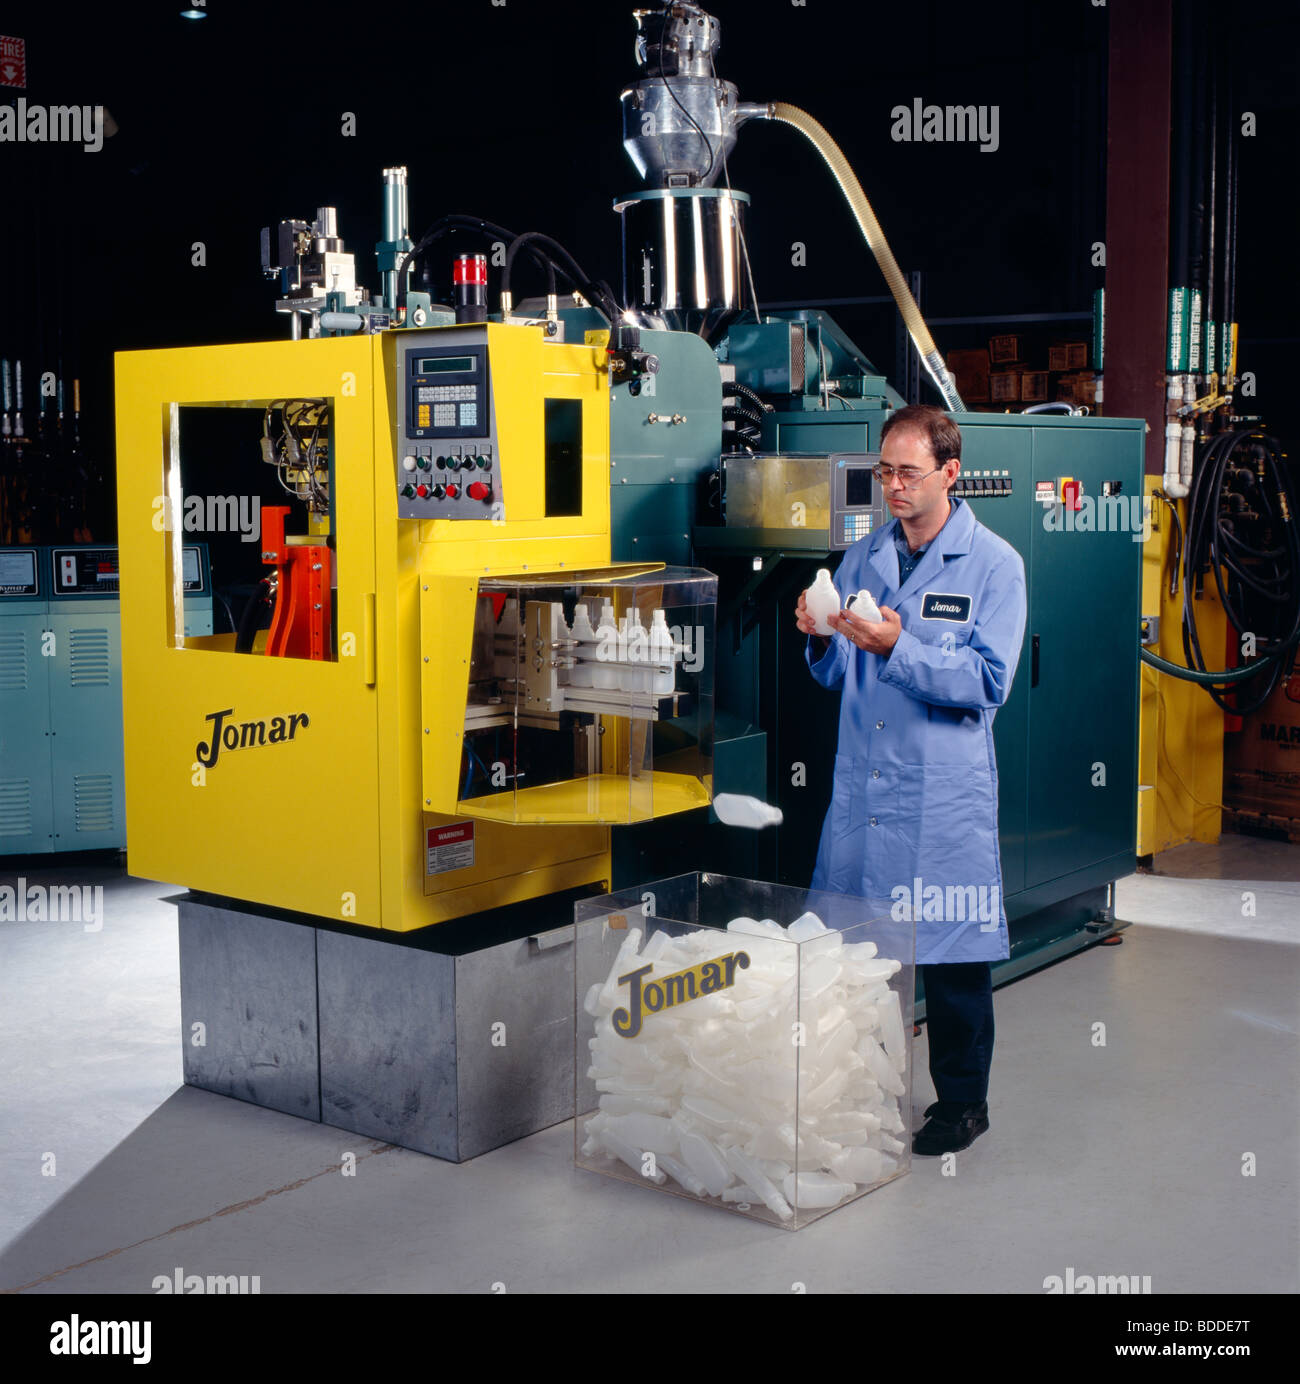 Extrusion blow molding machinery makes plastic containers. - Stock Image